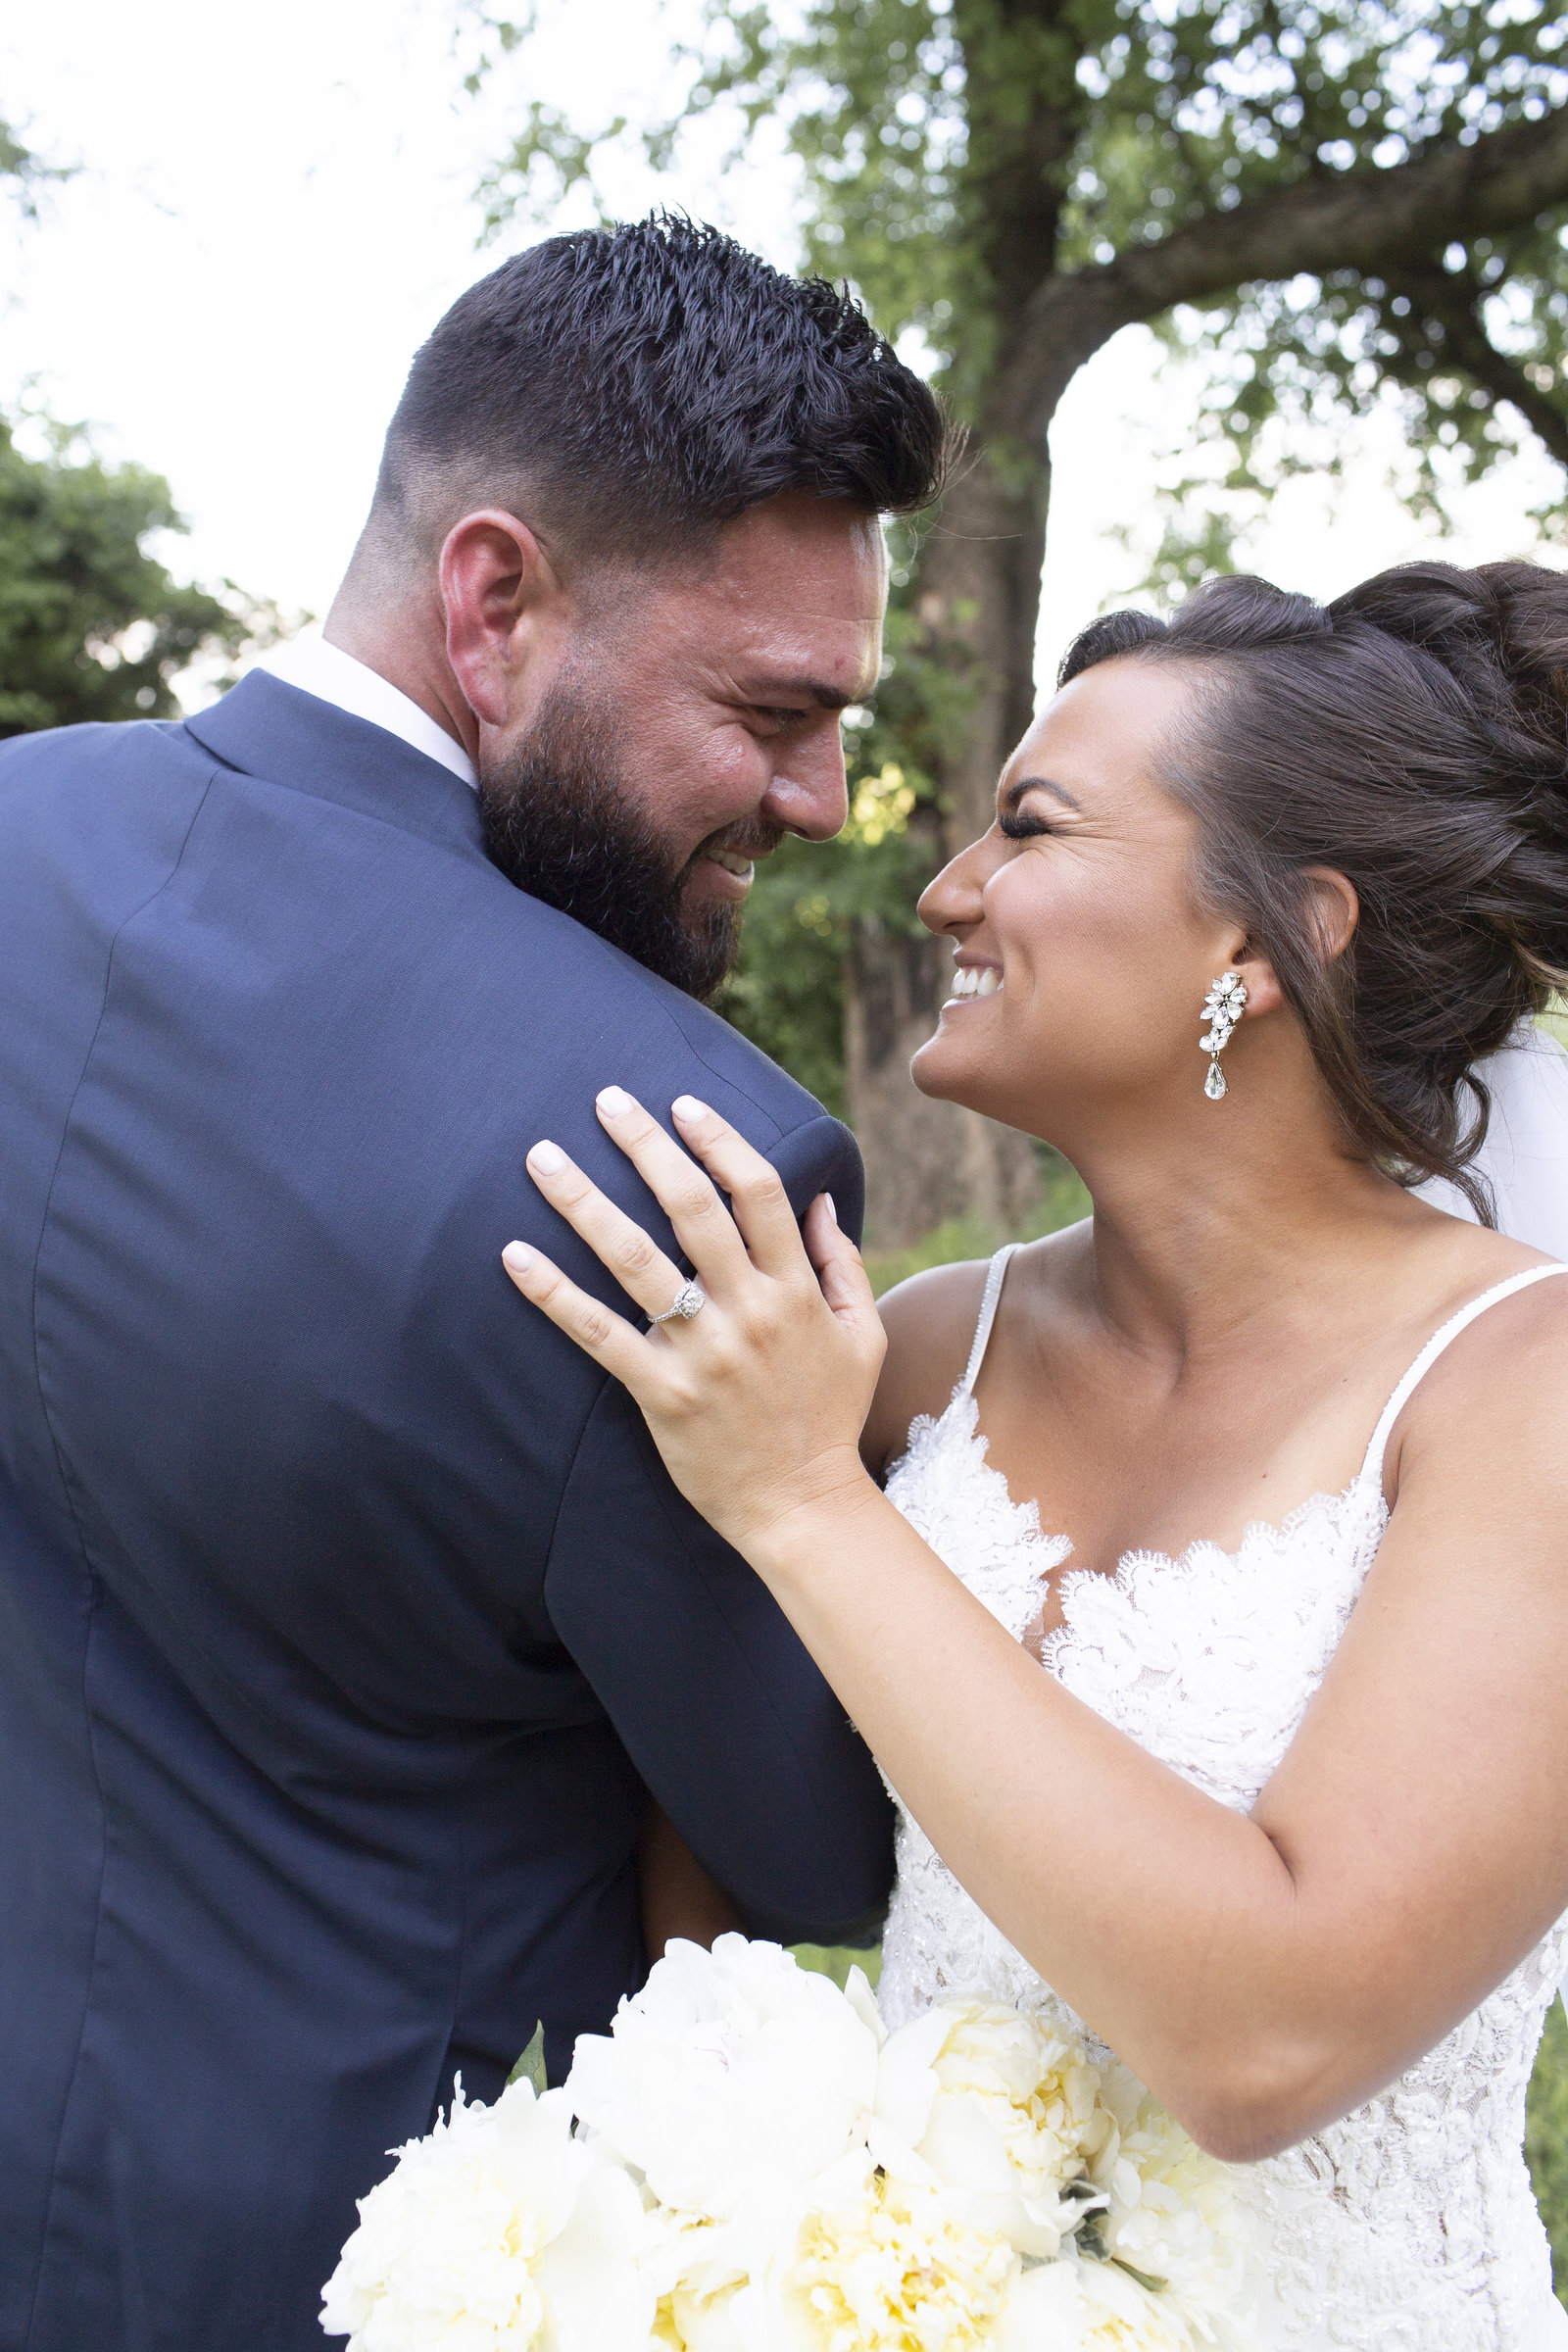 RMPhotography_PenaWedding_May4th2019_B+Gportraits-16